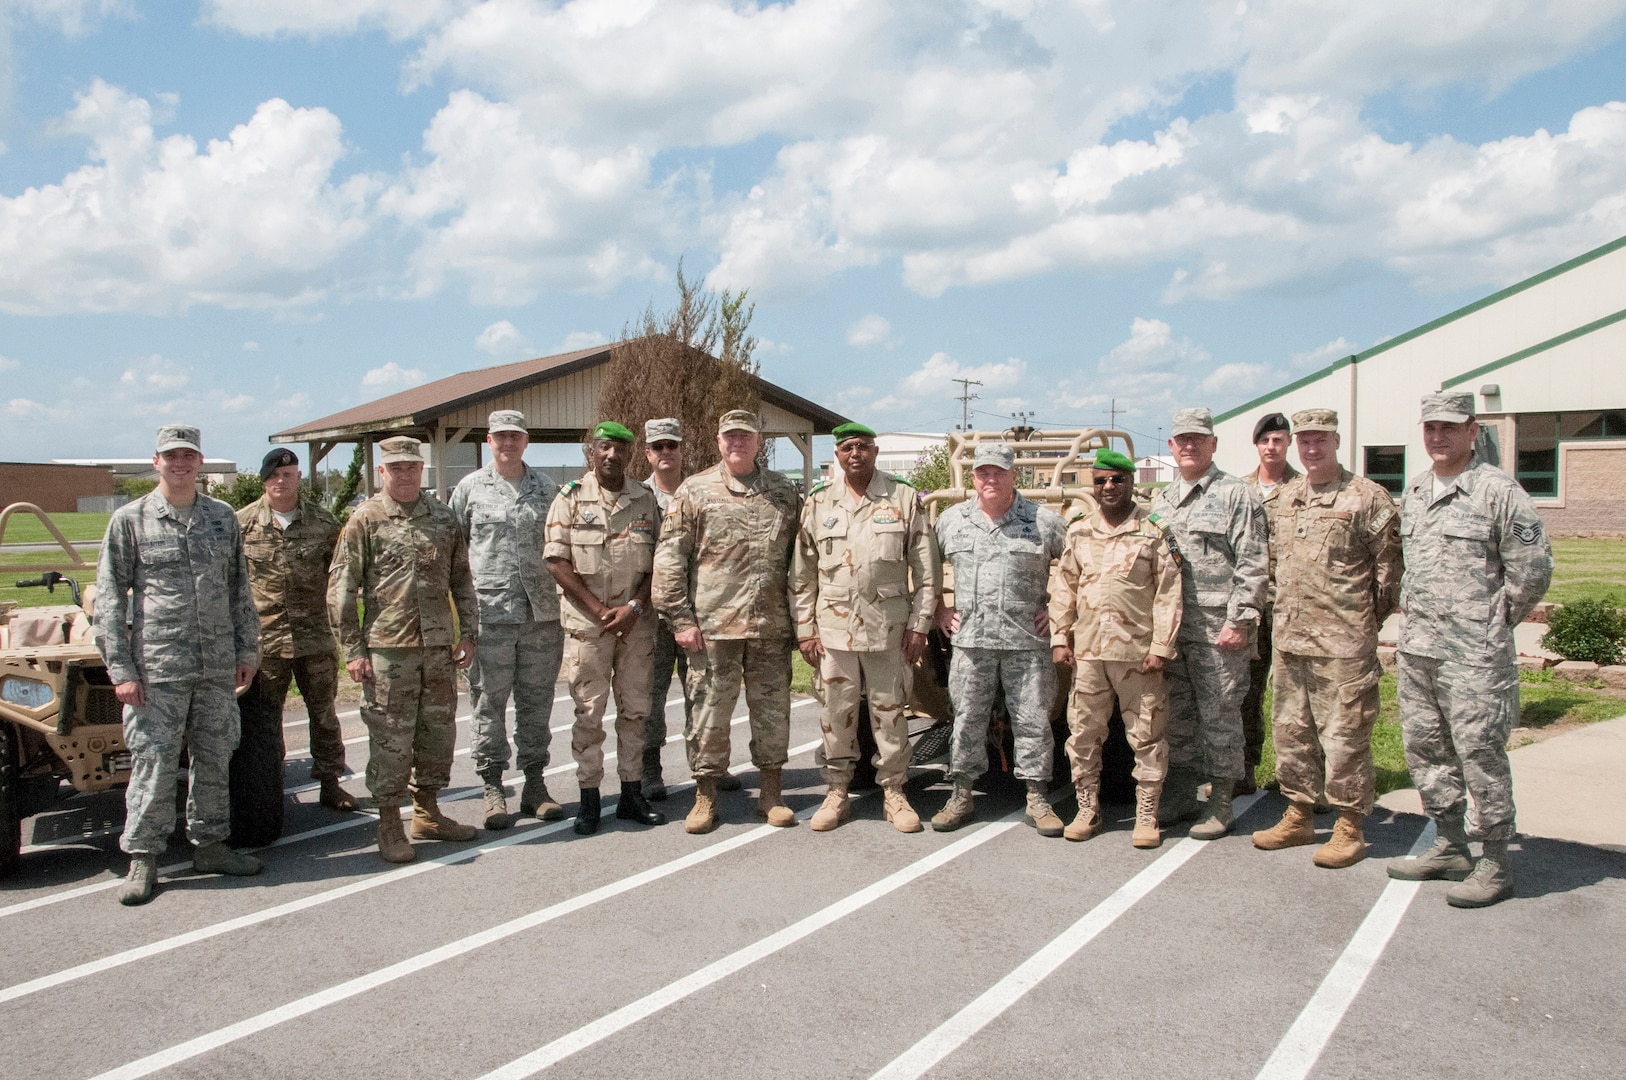 Service members from the Niger Armed Forces and Indiana National Guard pose for a group photo at the conclusion of a State Partnership Program meeting at Hulman Field Air National Guard Base, Terre Haute, Indiana, Aug. 28, 2018.